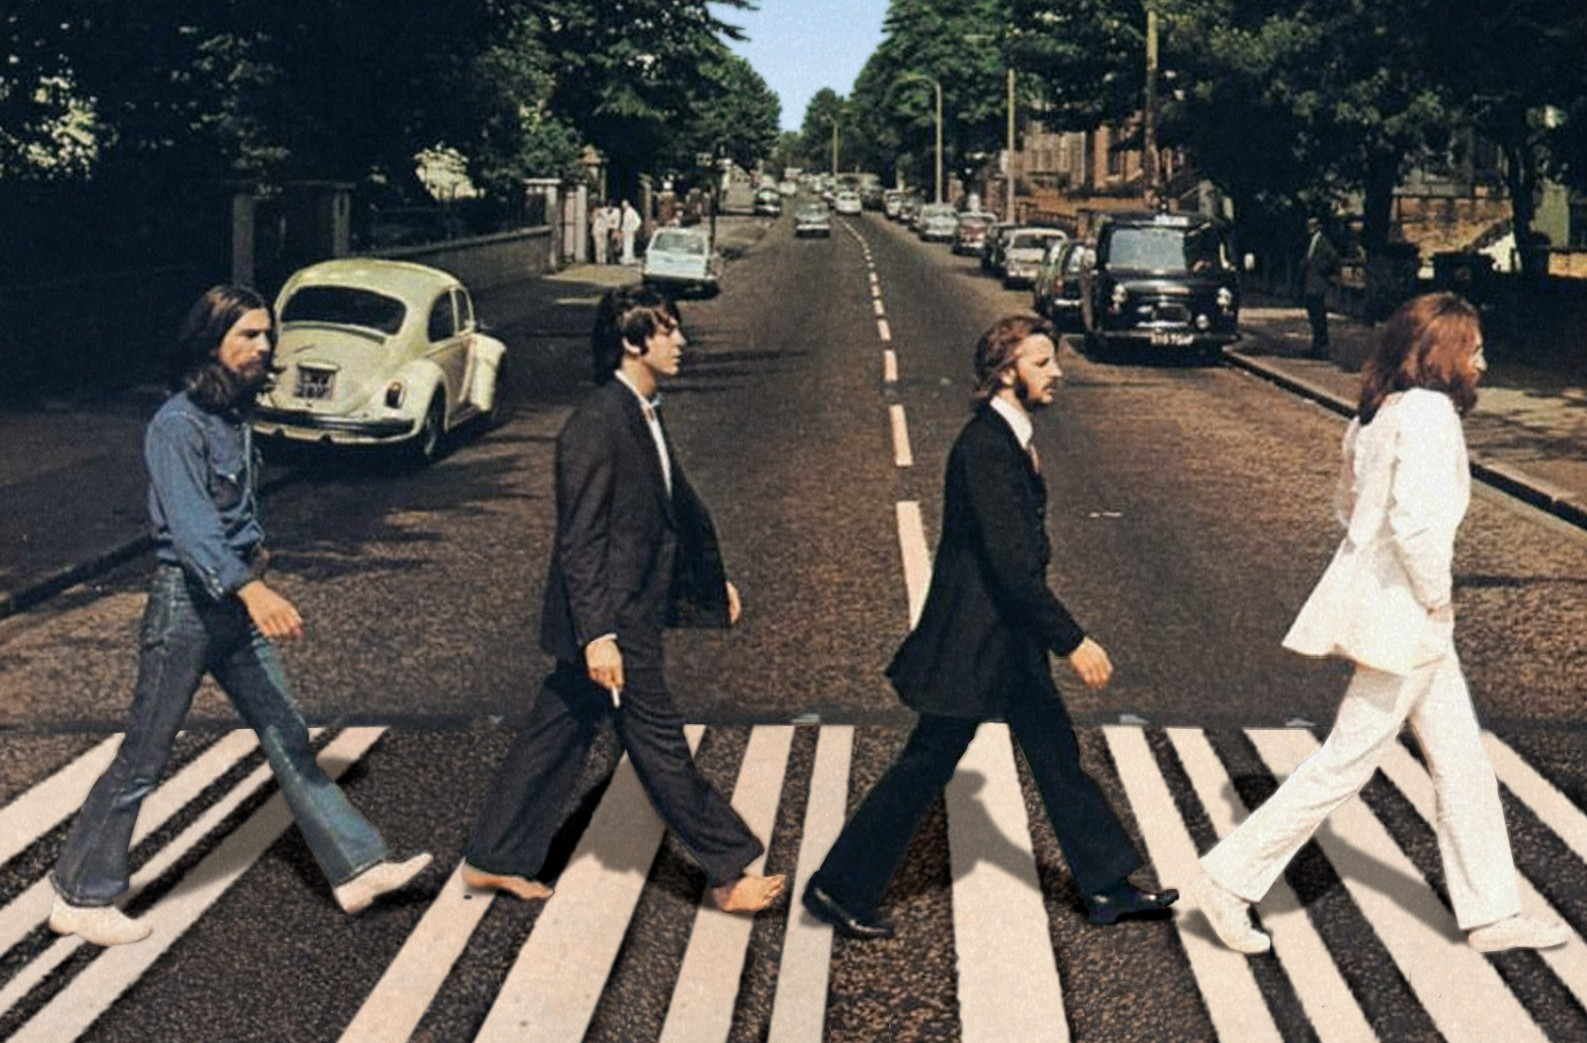 We'll be able to stream Beatles music for the first time ever on Christmas Eve!